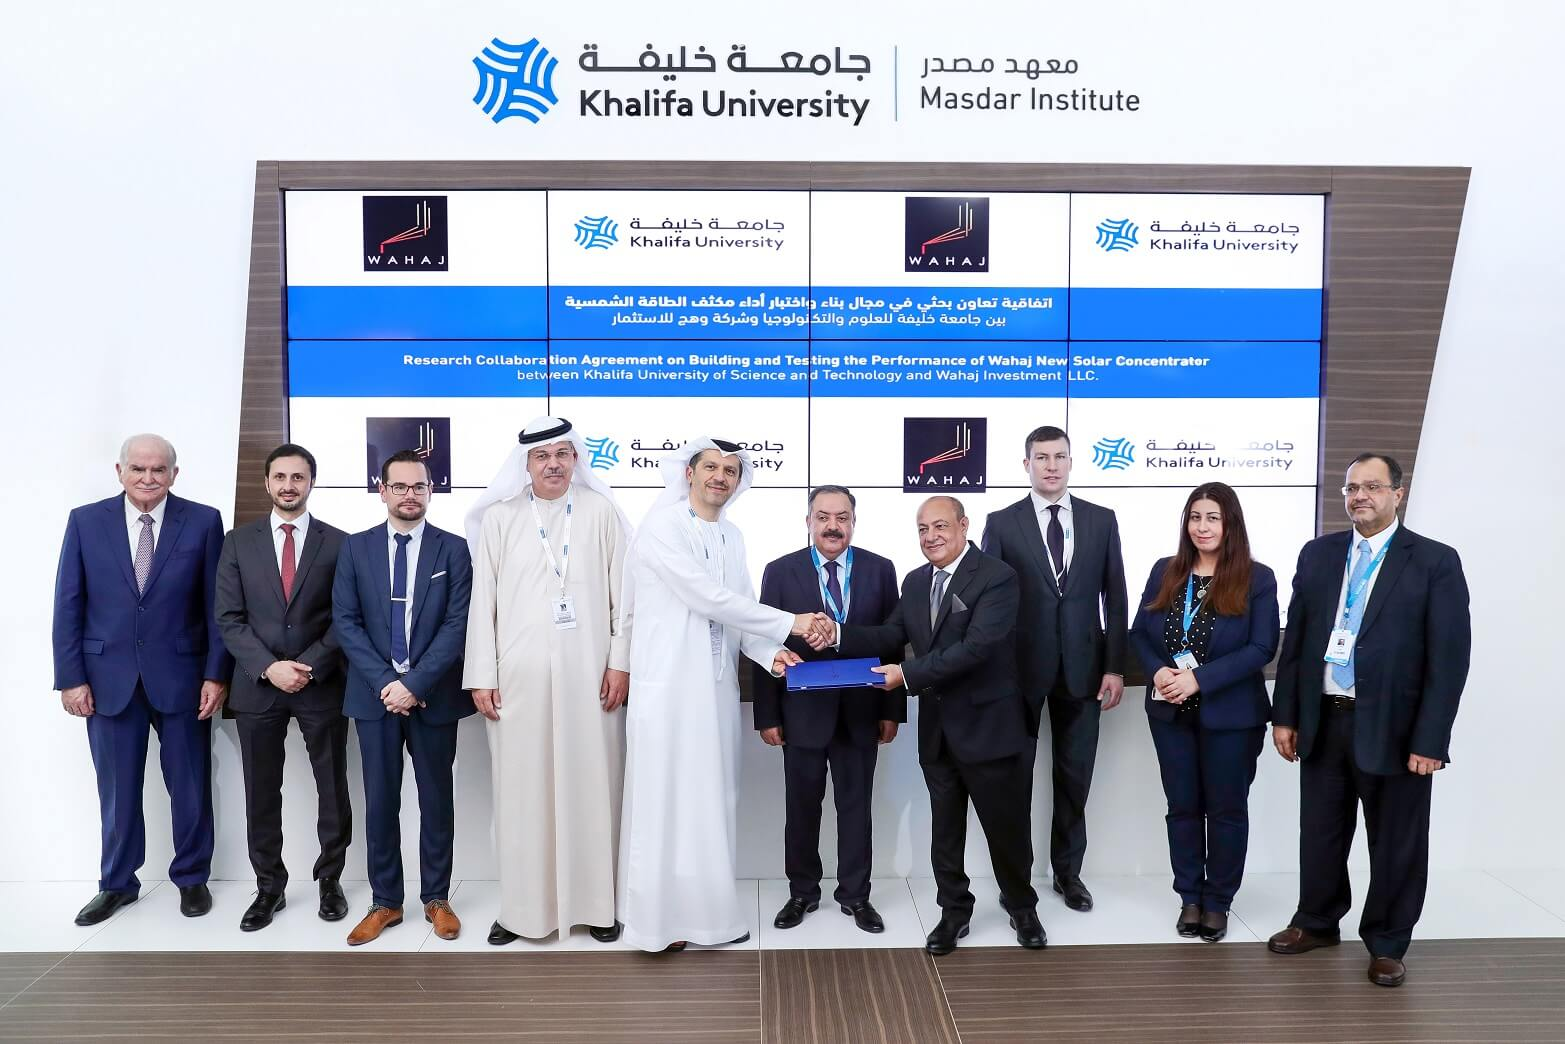 KU and Wahaj Solar Sign Agreement to Test Innovative Prototype at Masdar Institute Solar Platform